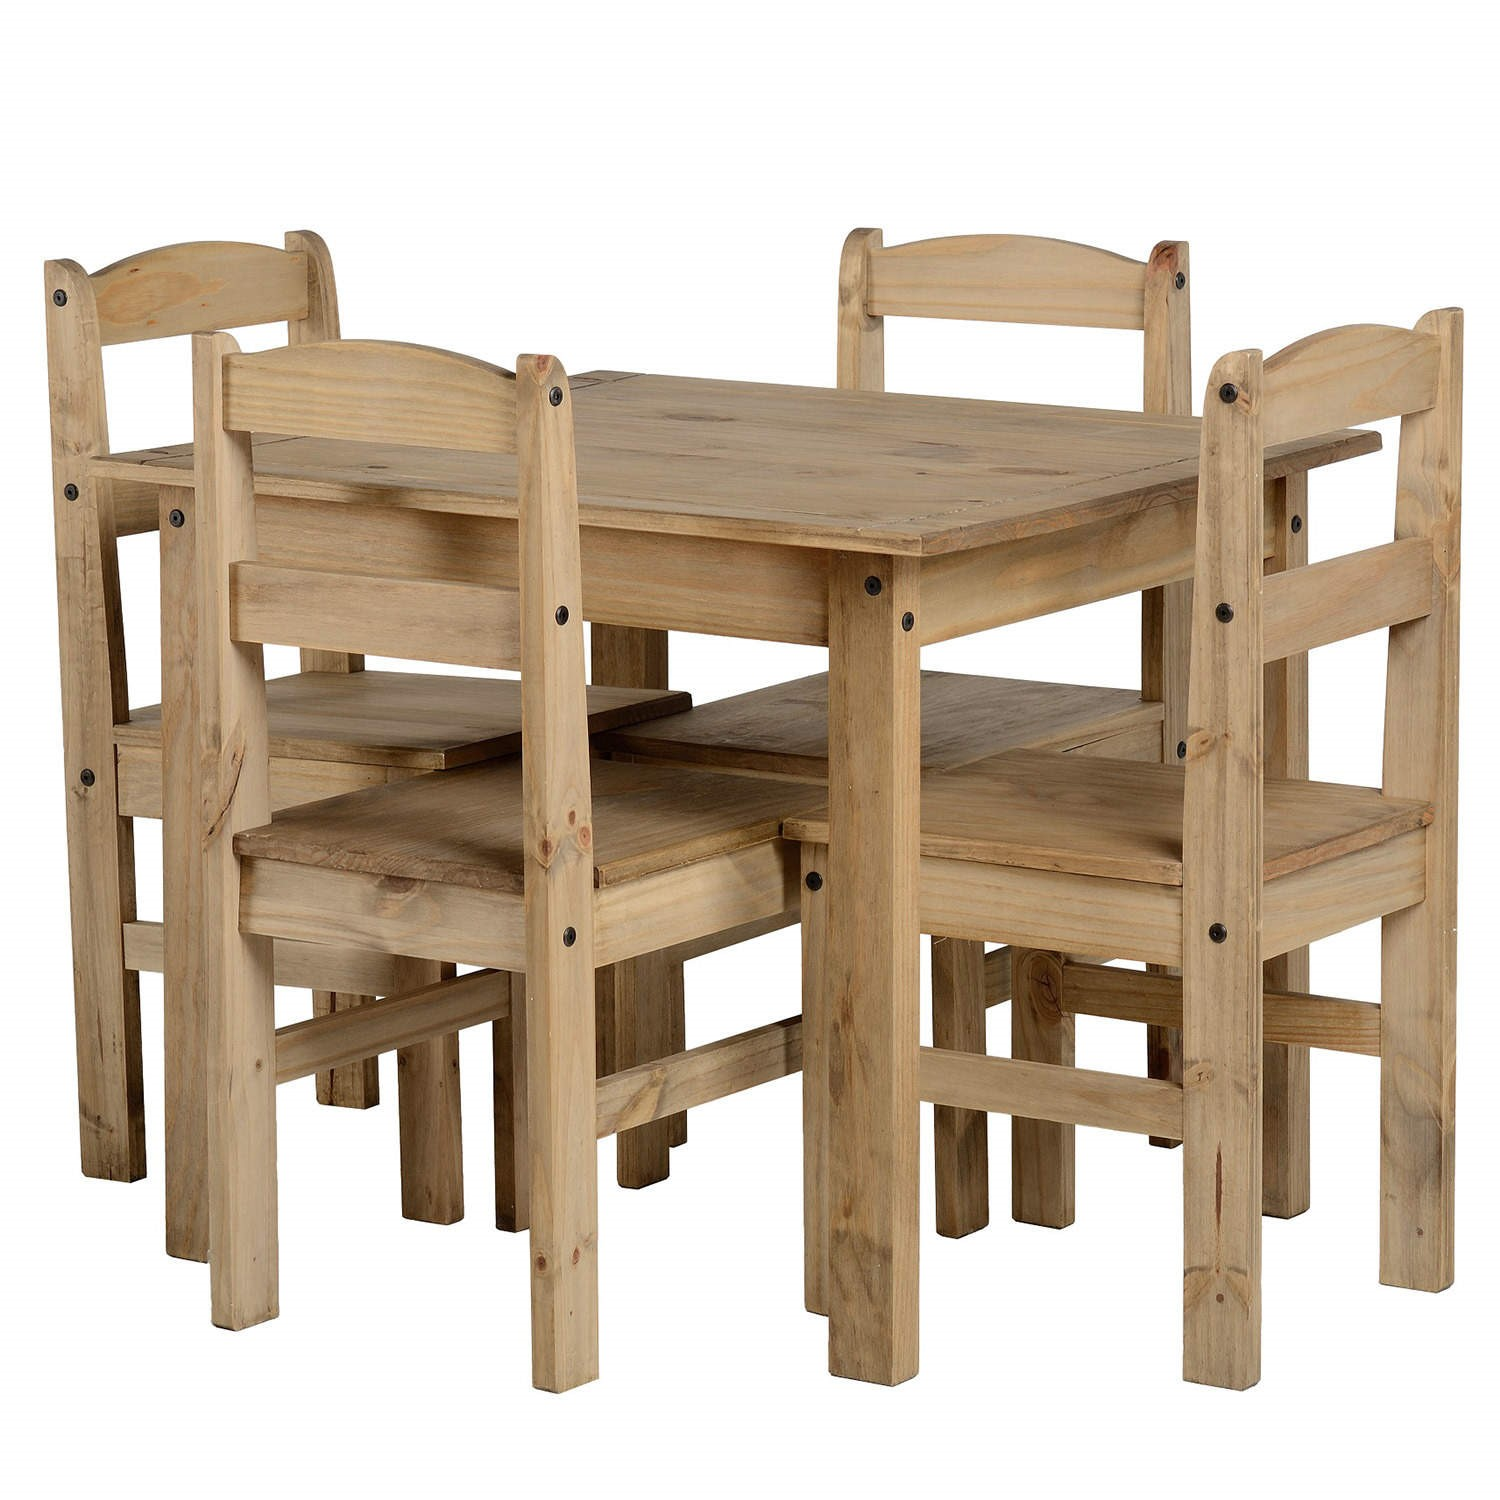 Seconique Panama Dining Set   Natural Wax Pine Dining Table U0026amp; 4 Natural  Wax Pine